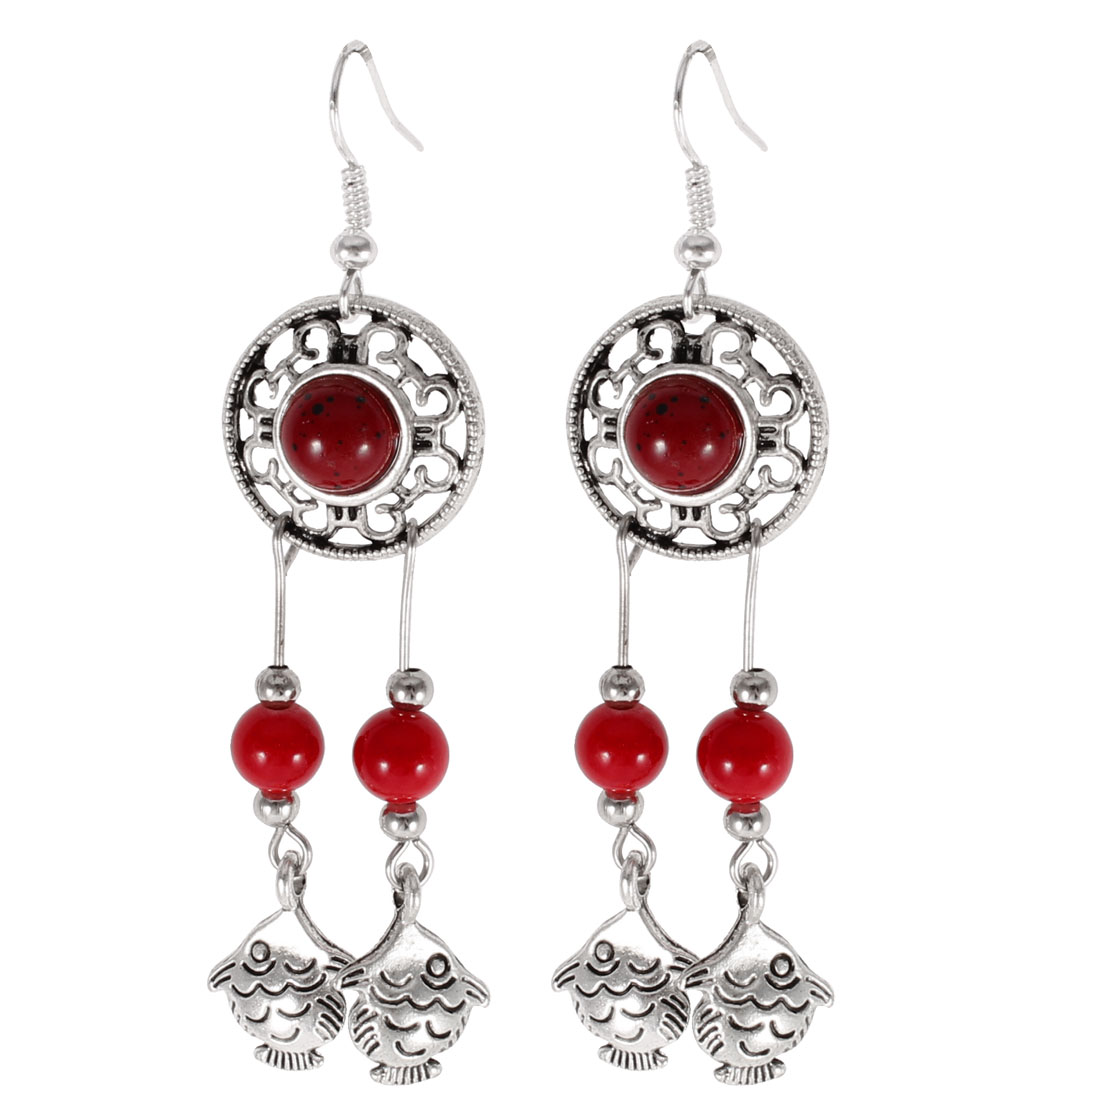 Ladies Fish Detail Red Beads Inlaid Round Pendant Hook Earrings Silver Tone Pair